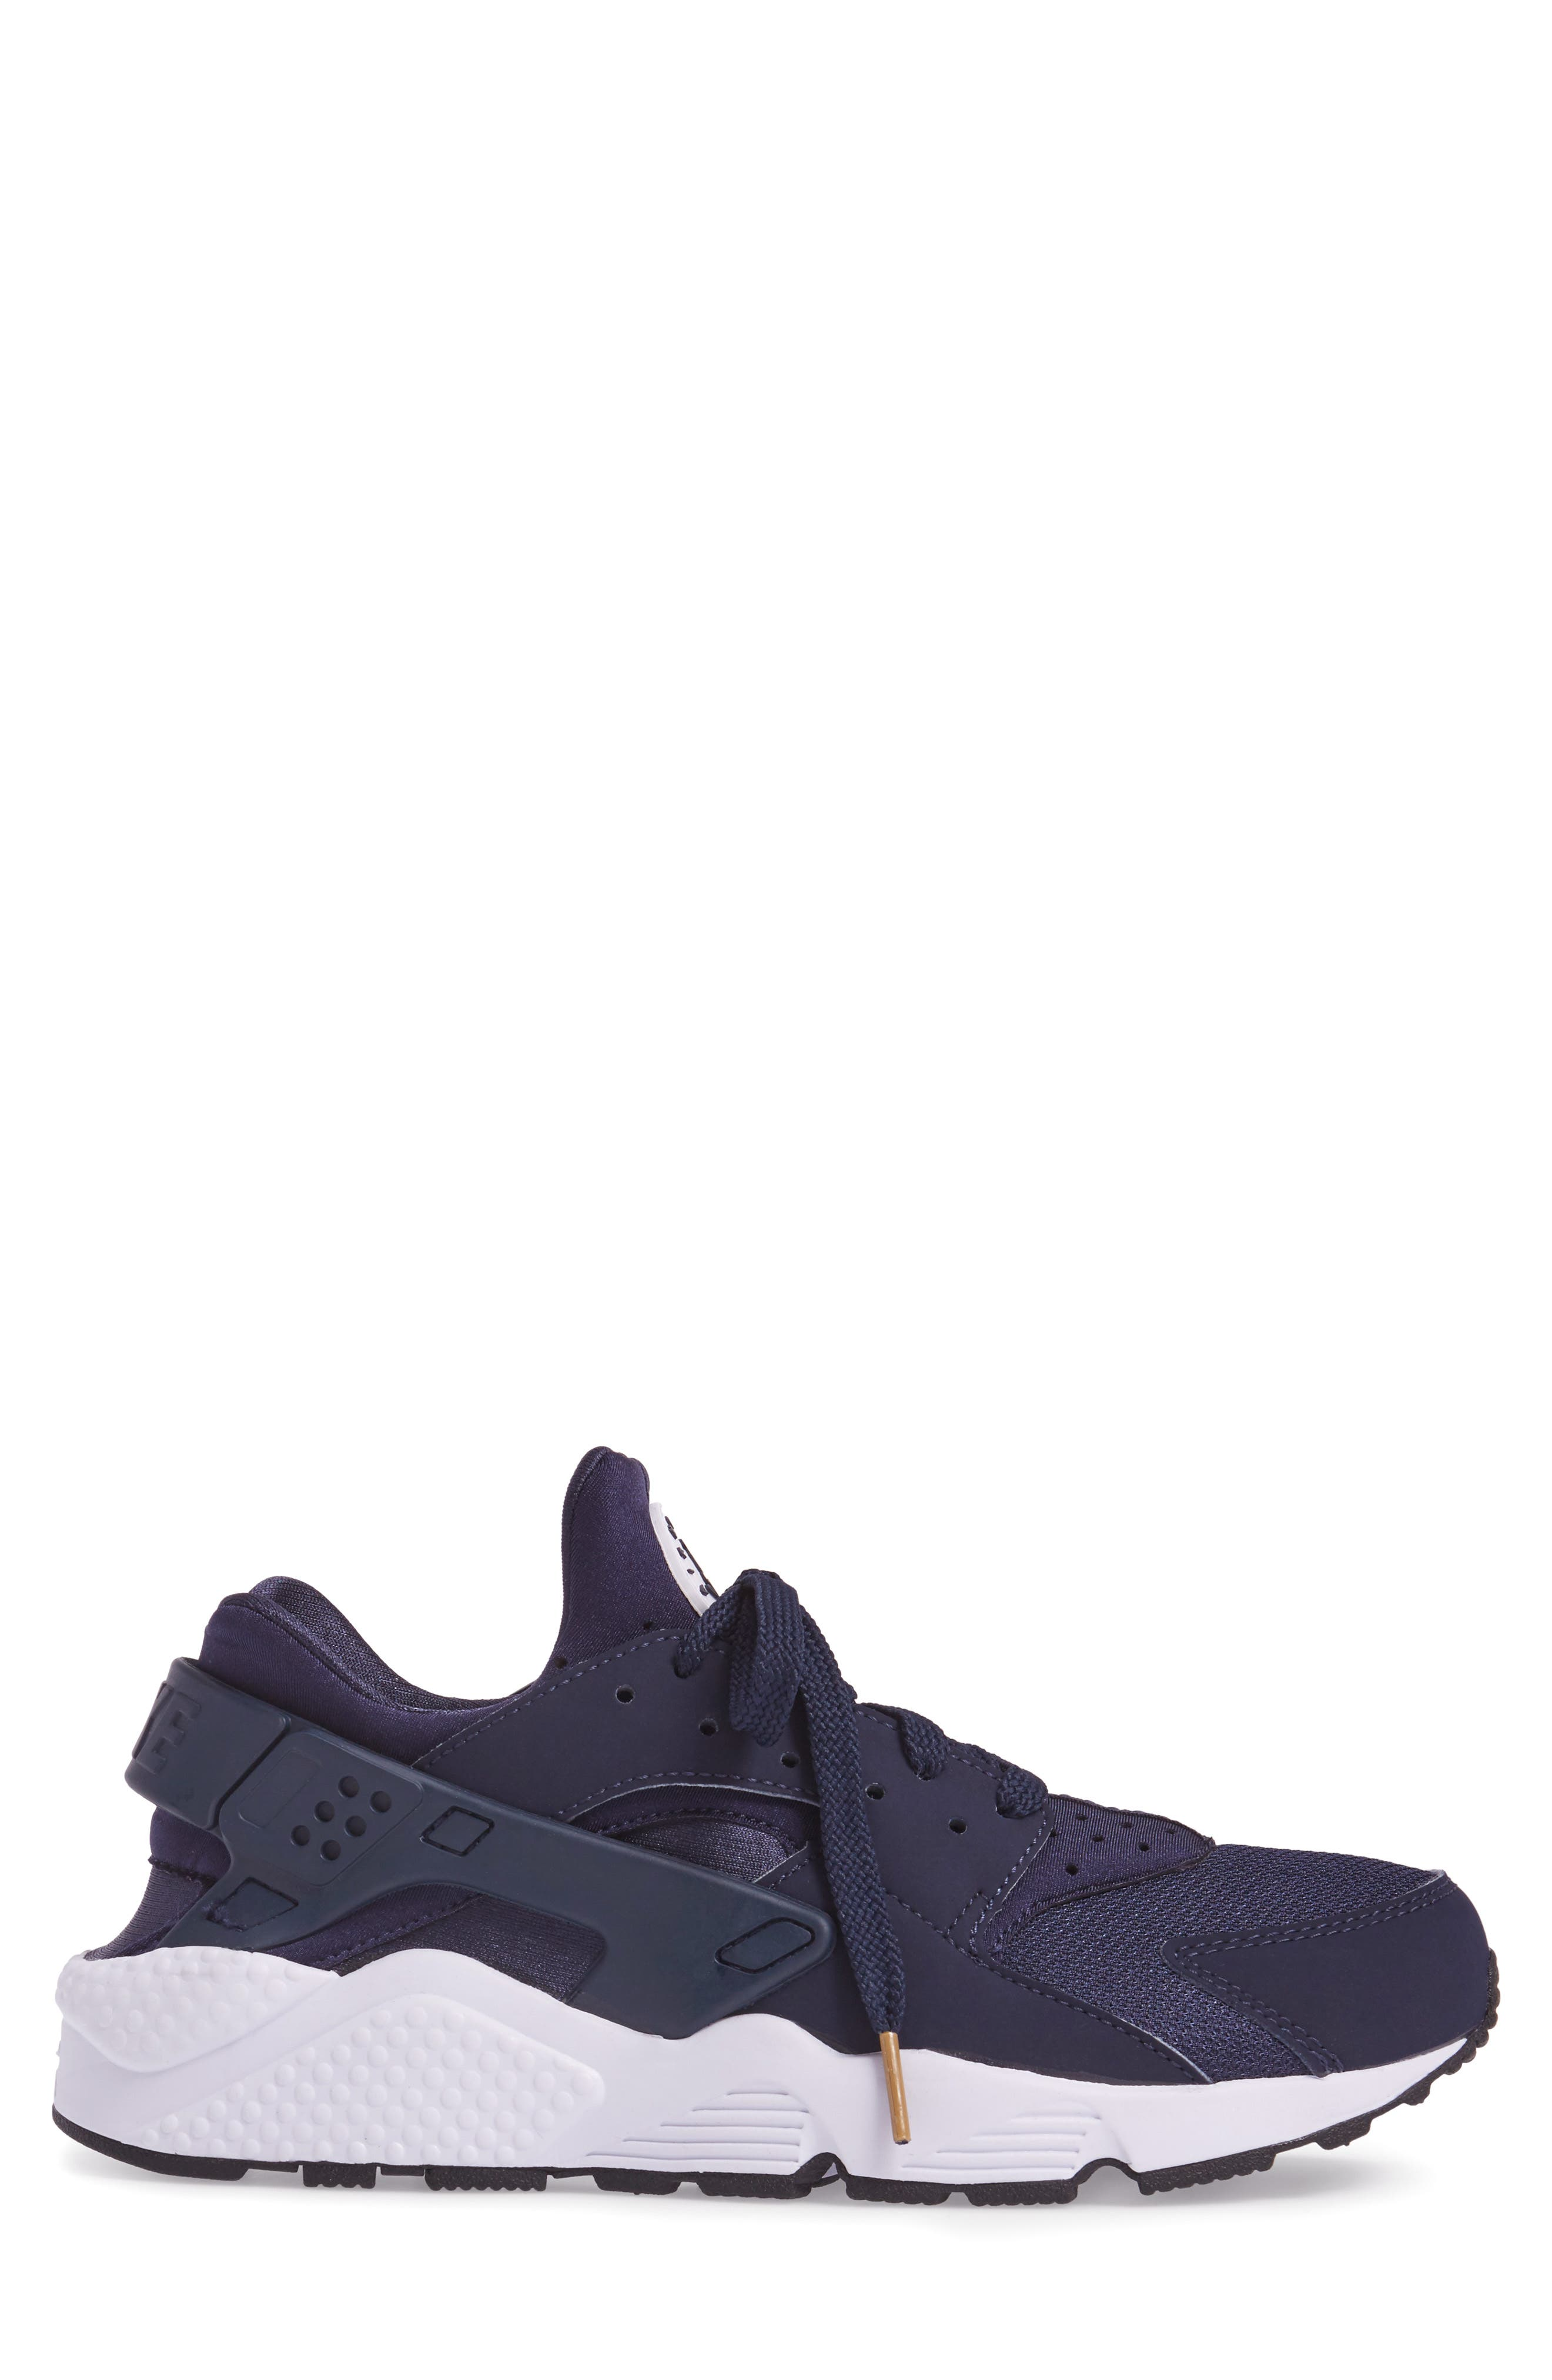 Alternate Image 3  - Nike 'Air Huarache' Sneaker (Men)